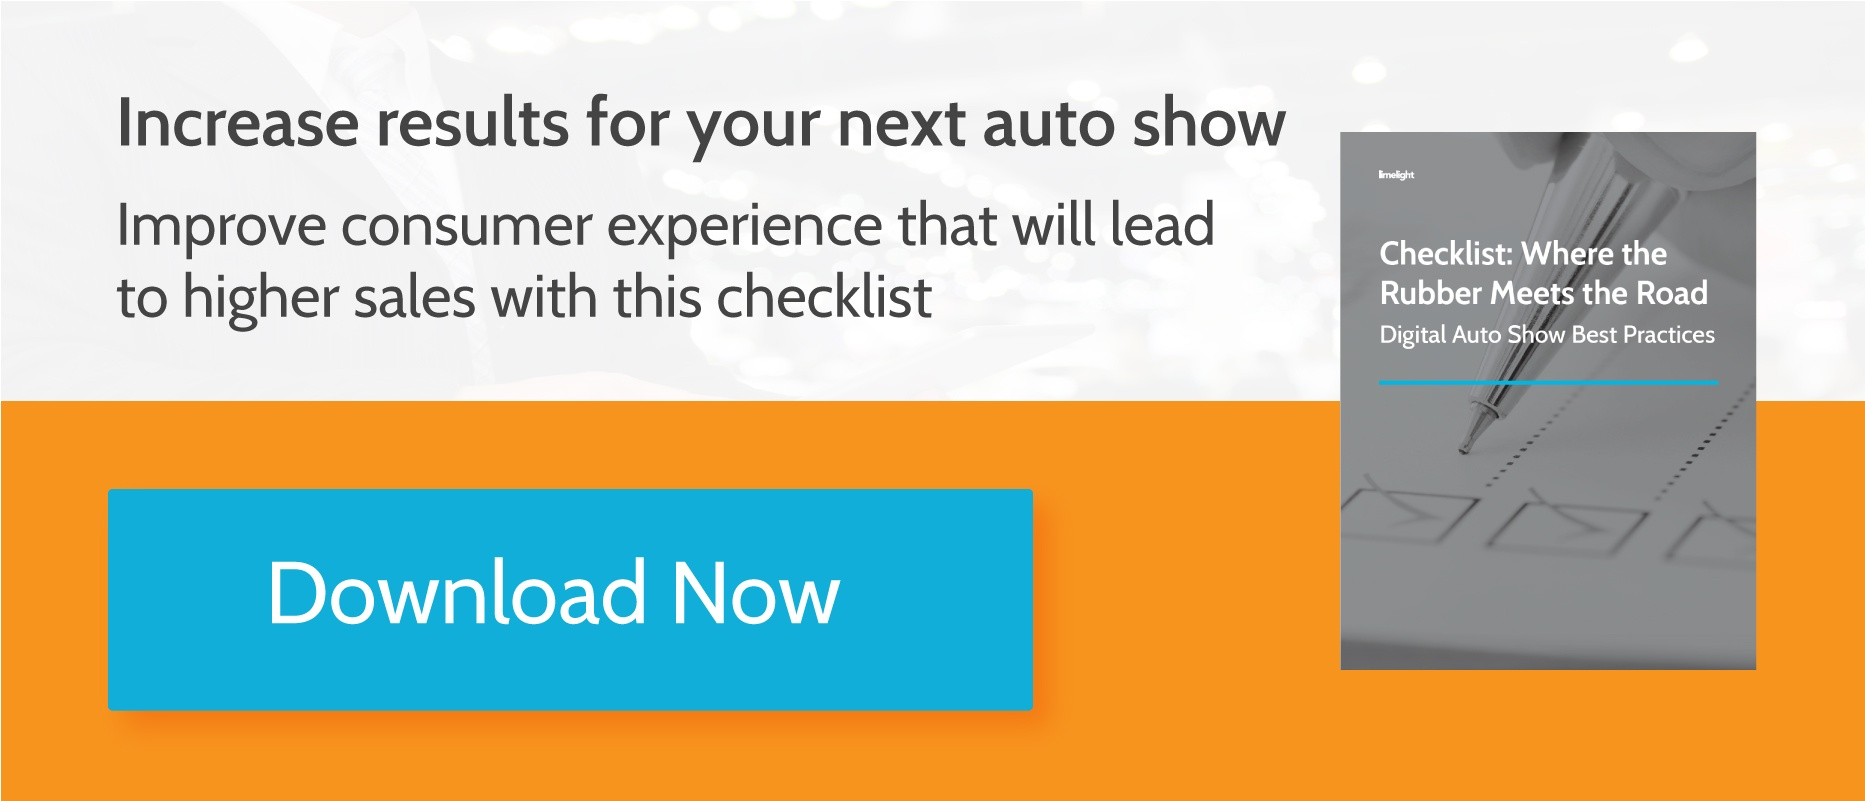 CTA image to view Checklist: Where the Rubber Meets the Road: Digital Auto Show Best Practices